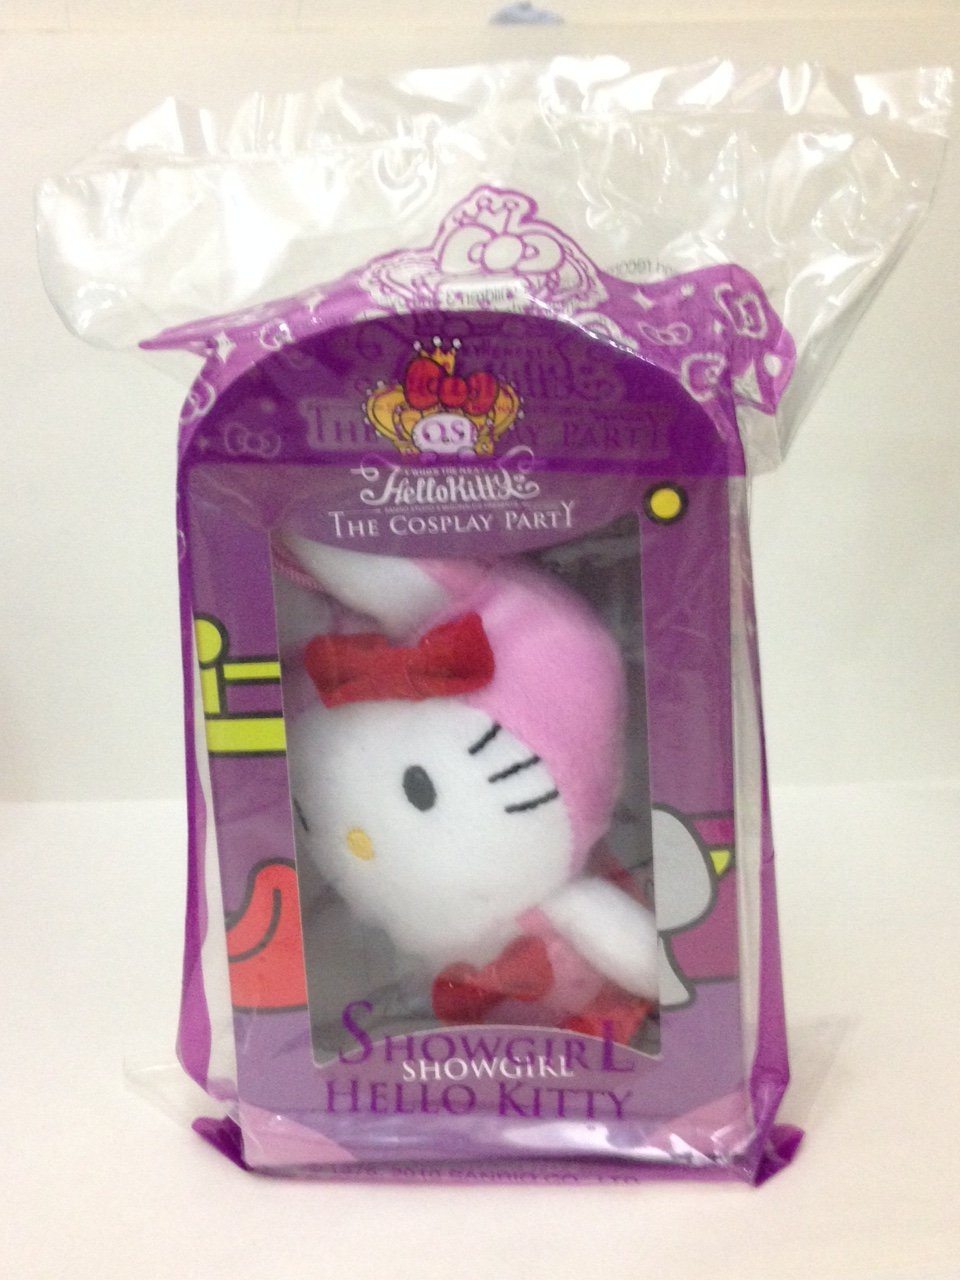 2010 Mcdonalds Sanrio HELLO KITTY Cosplay Party Plush Doll (Showgirl)